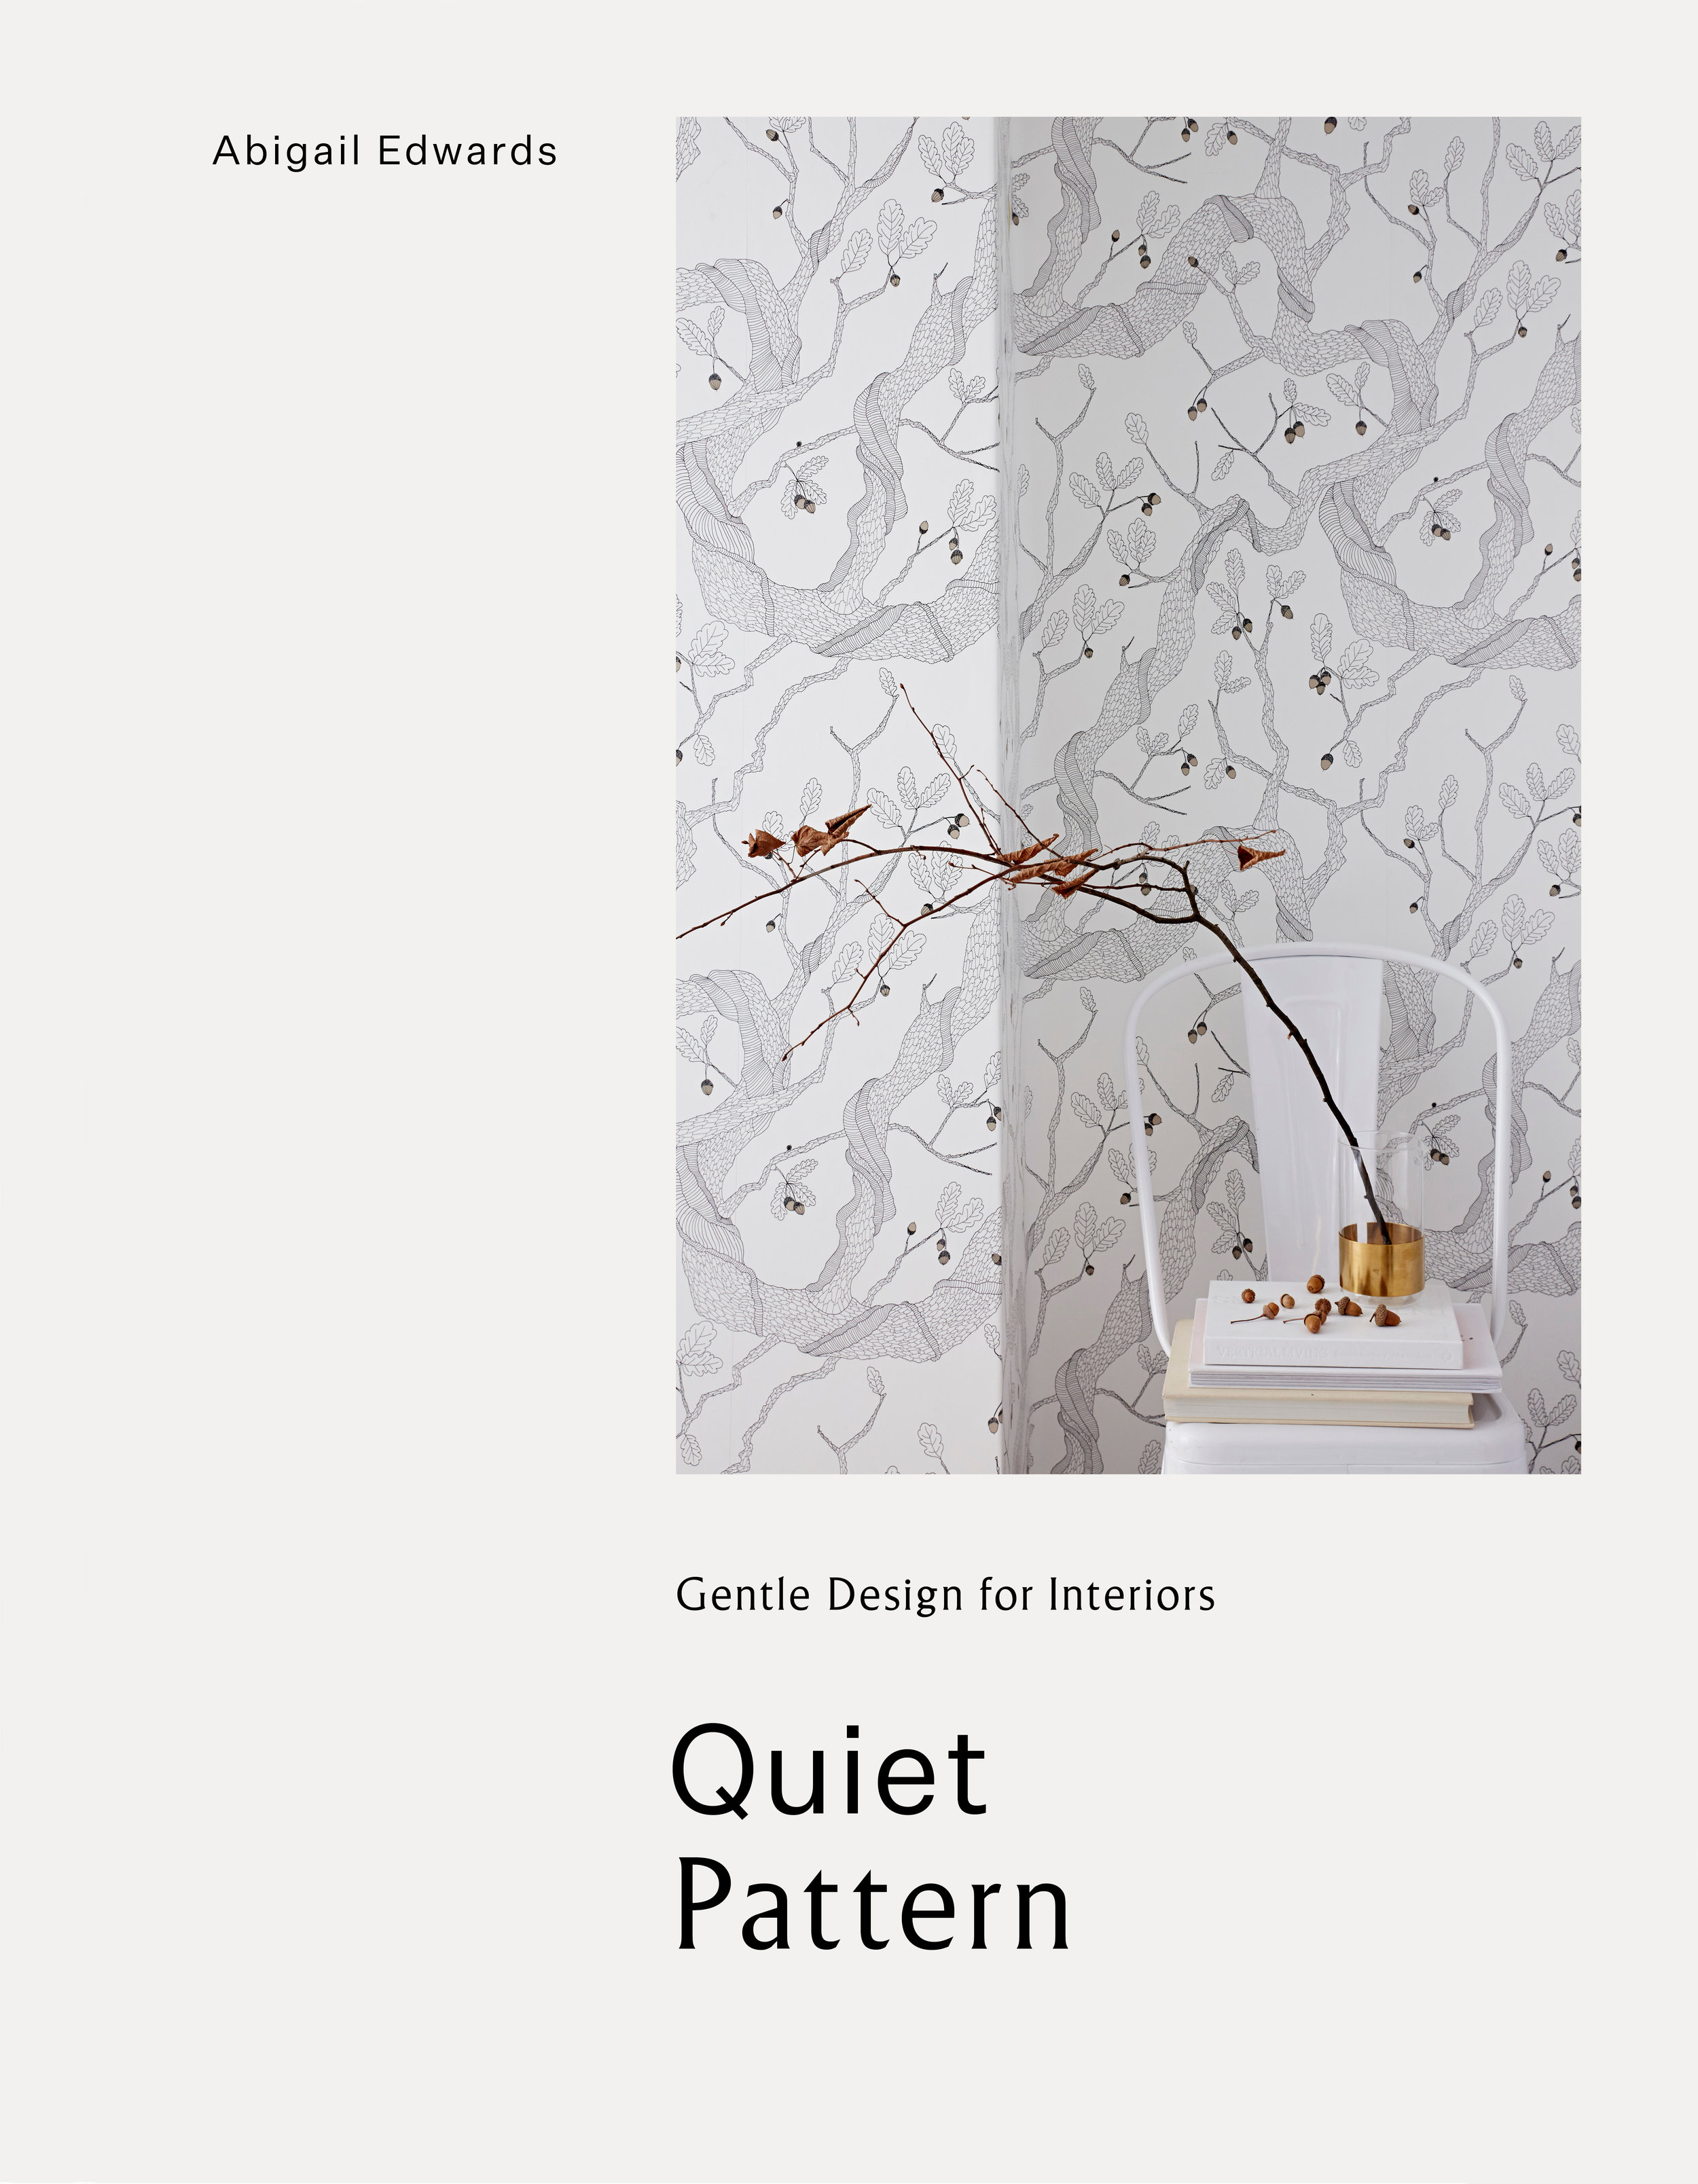 The Cover for Quiet Pattern by Abigail Edwards